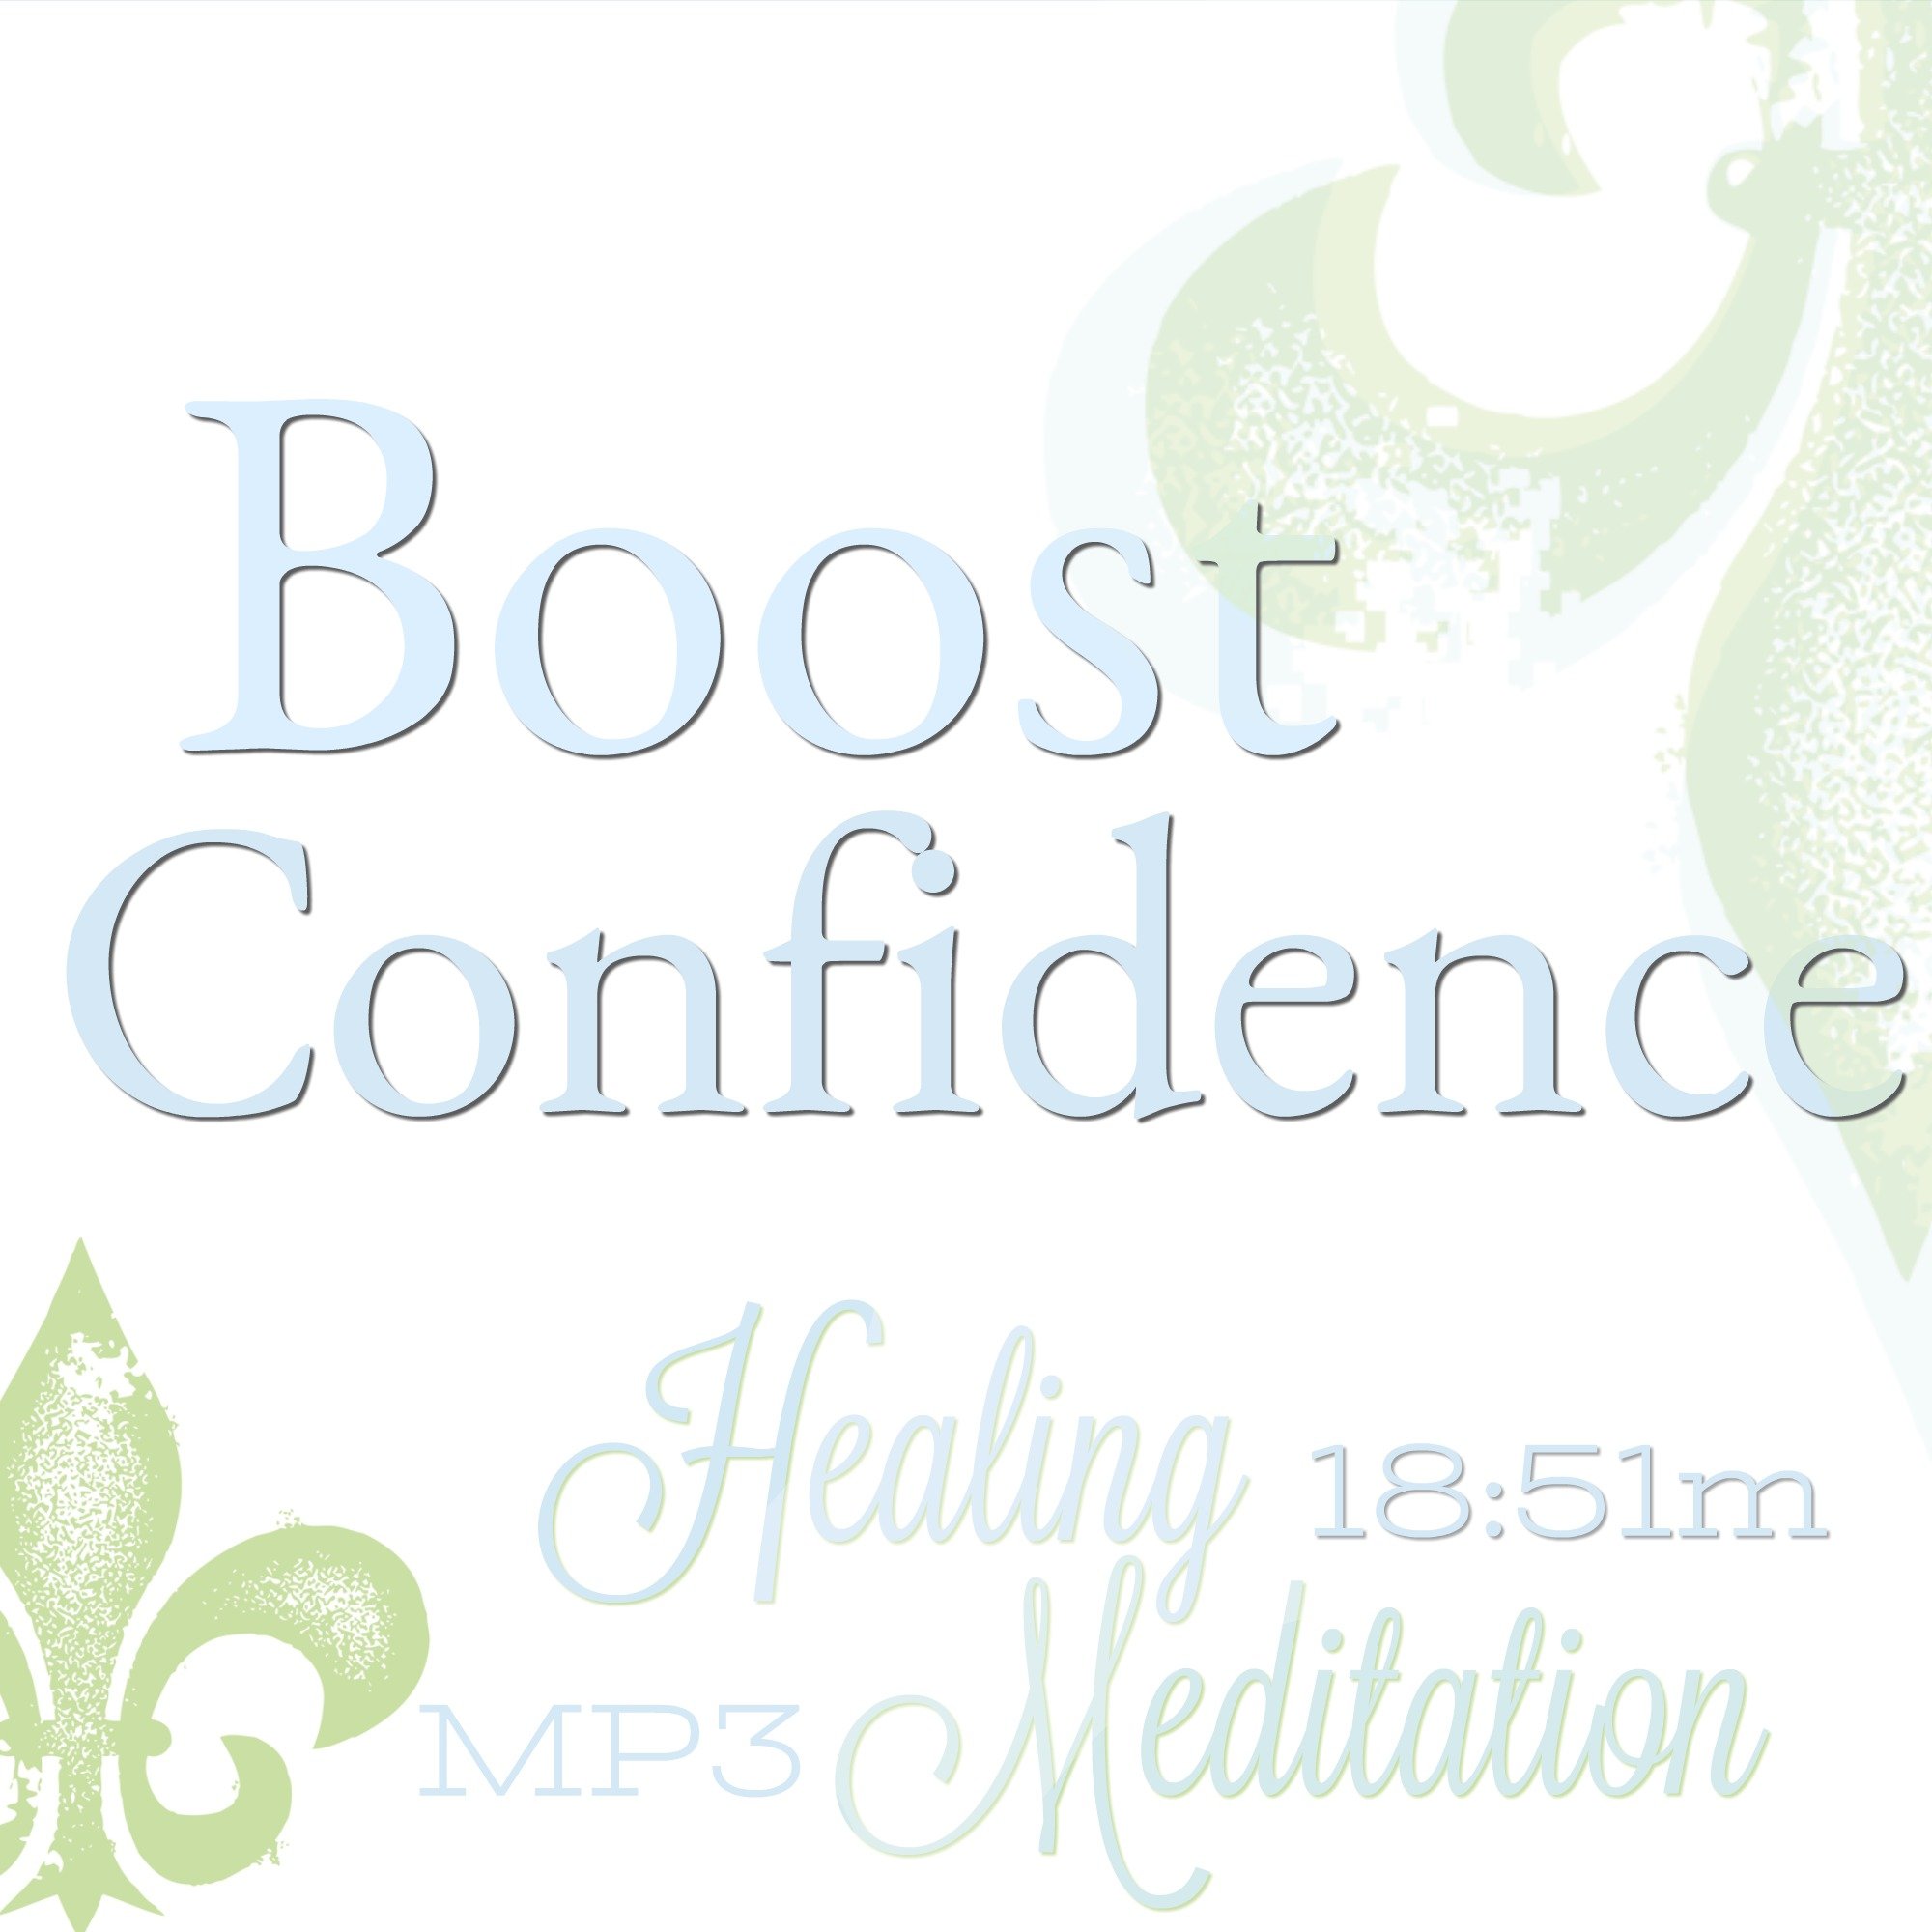 Confidence meditation, Self Esteem meditation, more confidence meditation, boost confidence meditation